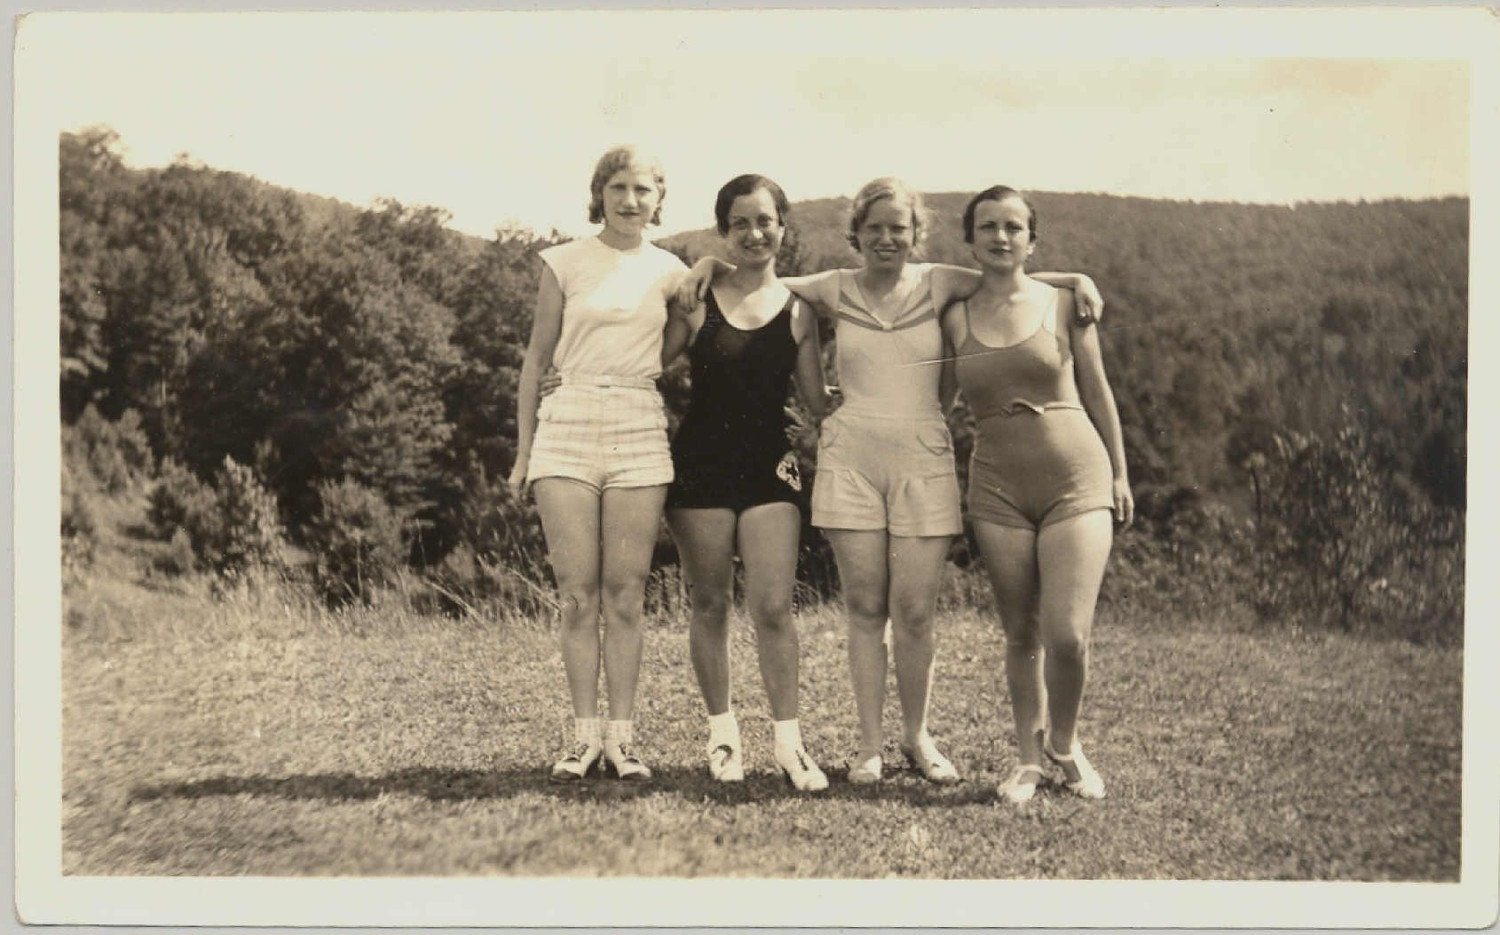 Bathing beauties vintage photo of four women by romancewriter